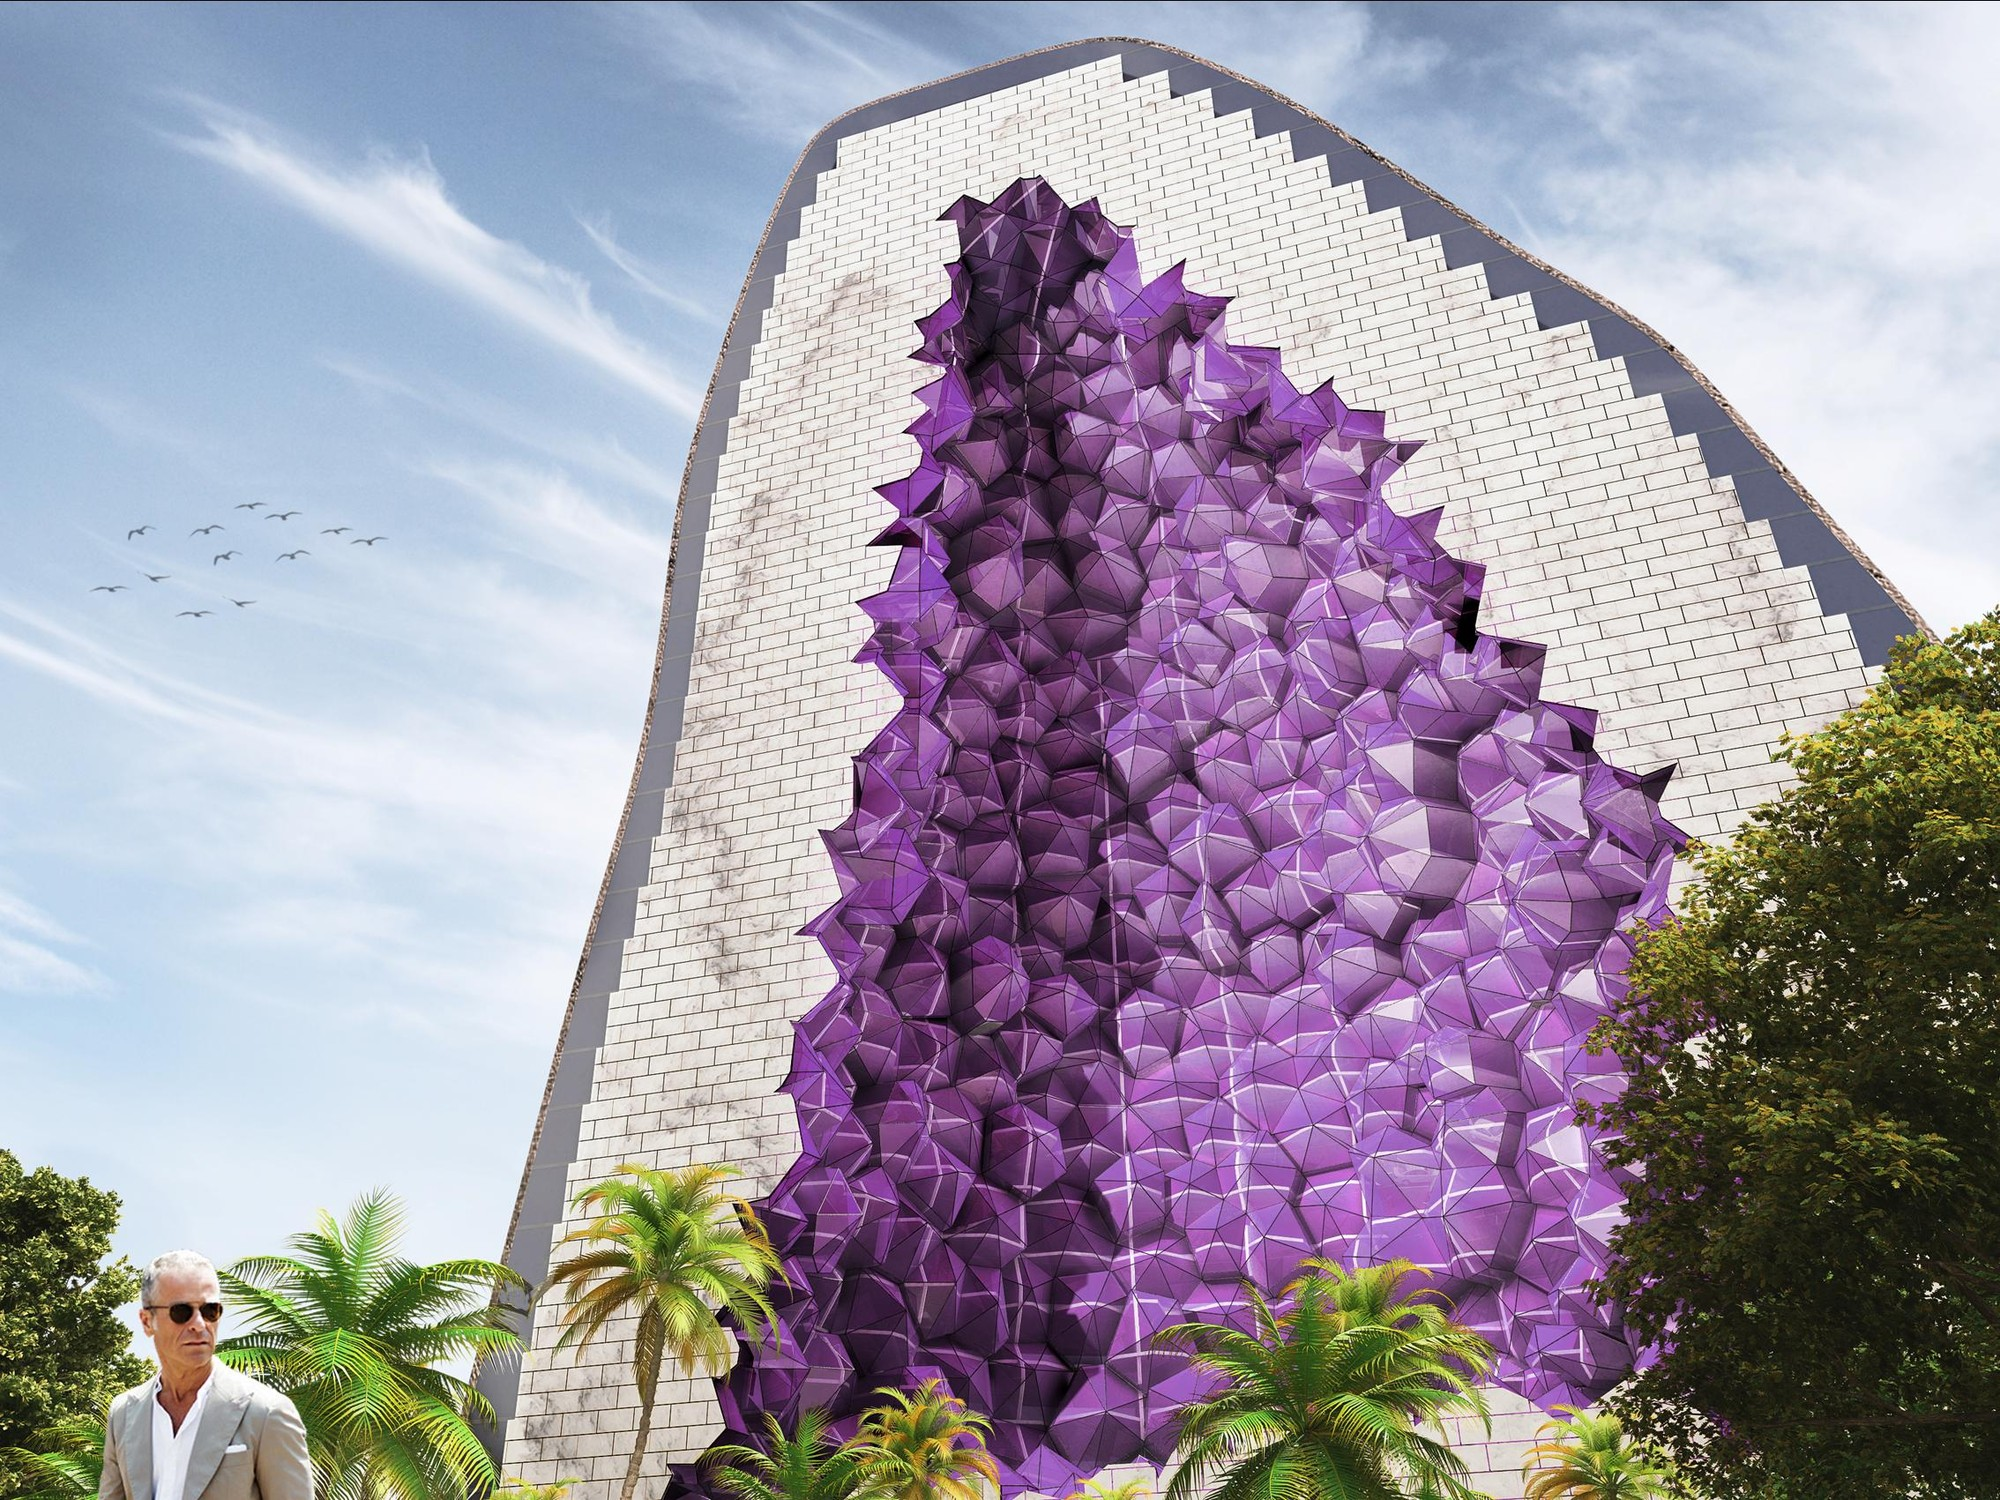 NL Architects Propose Striking Chain of Amethyst-Inspired Hotels